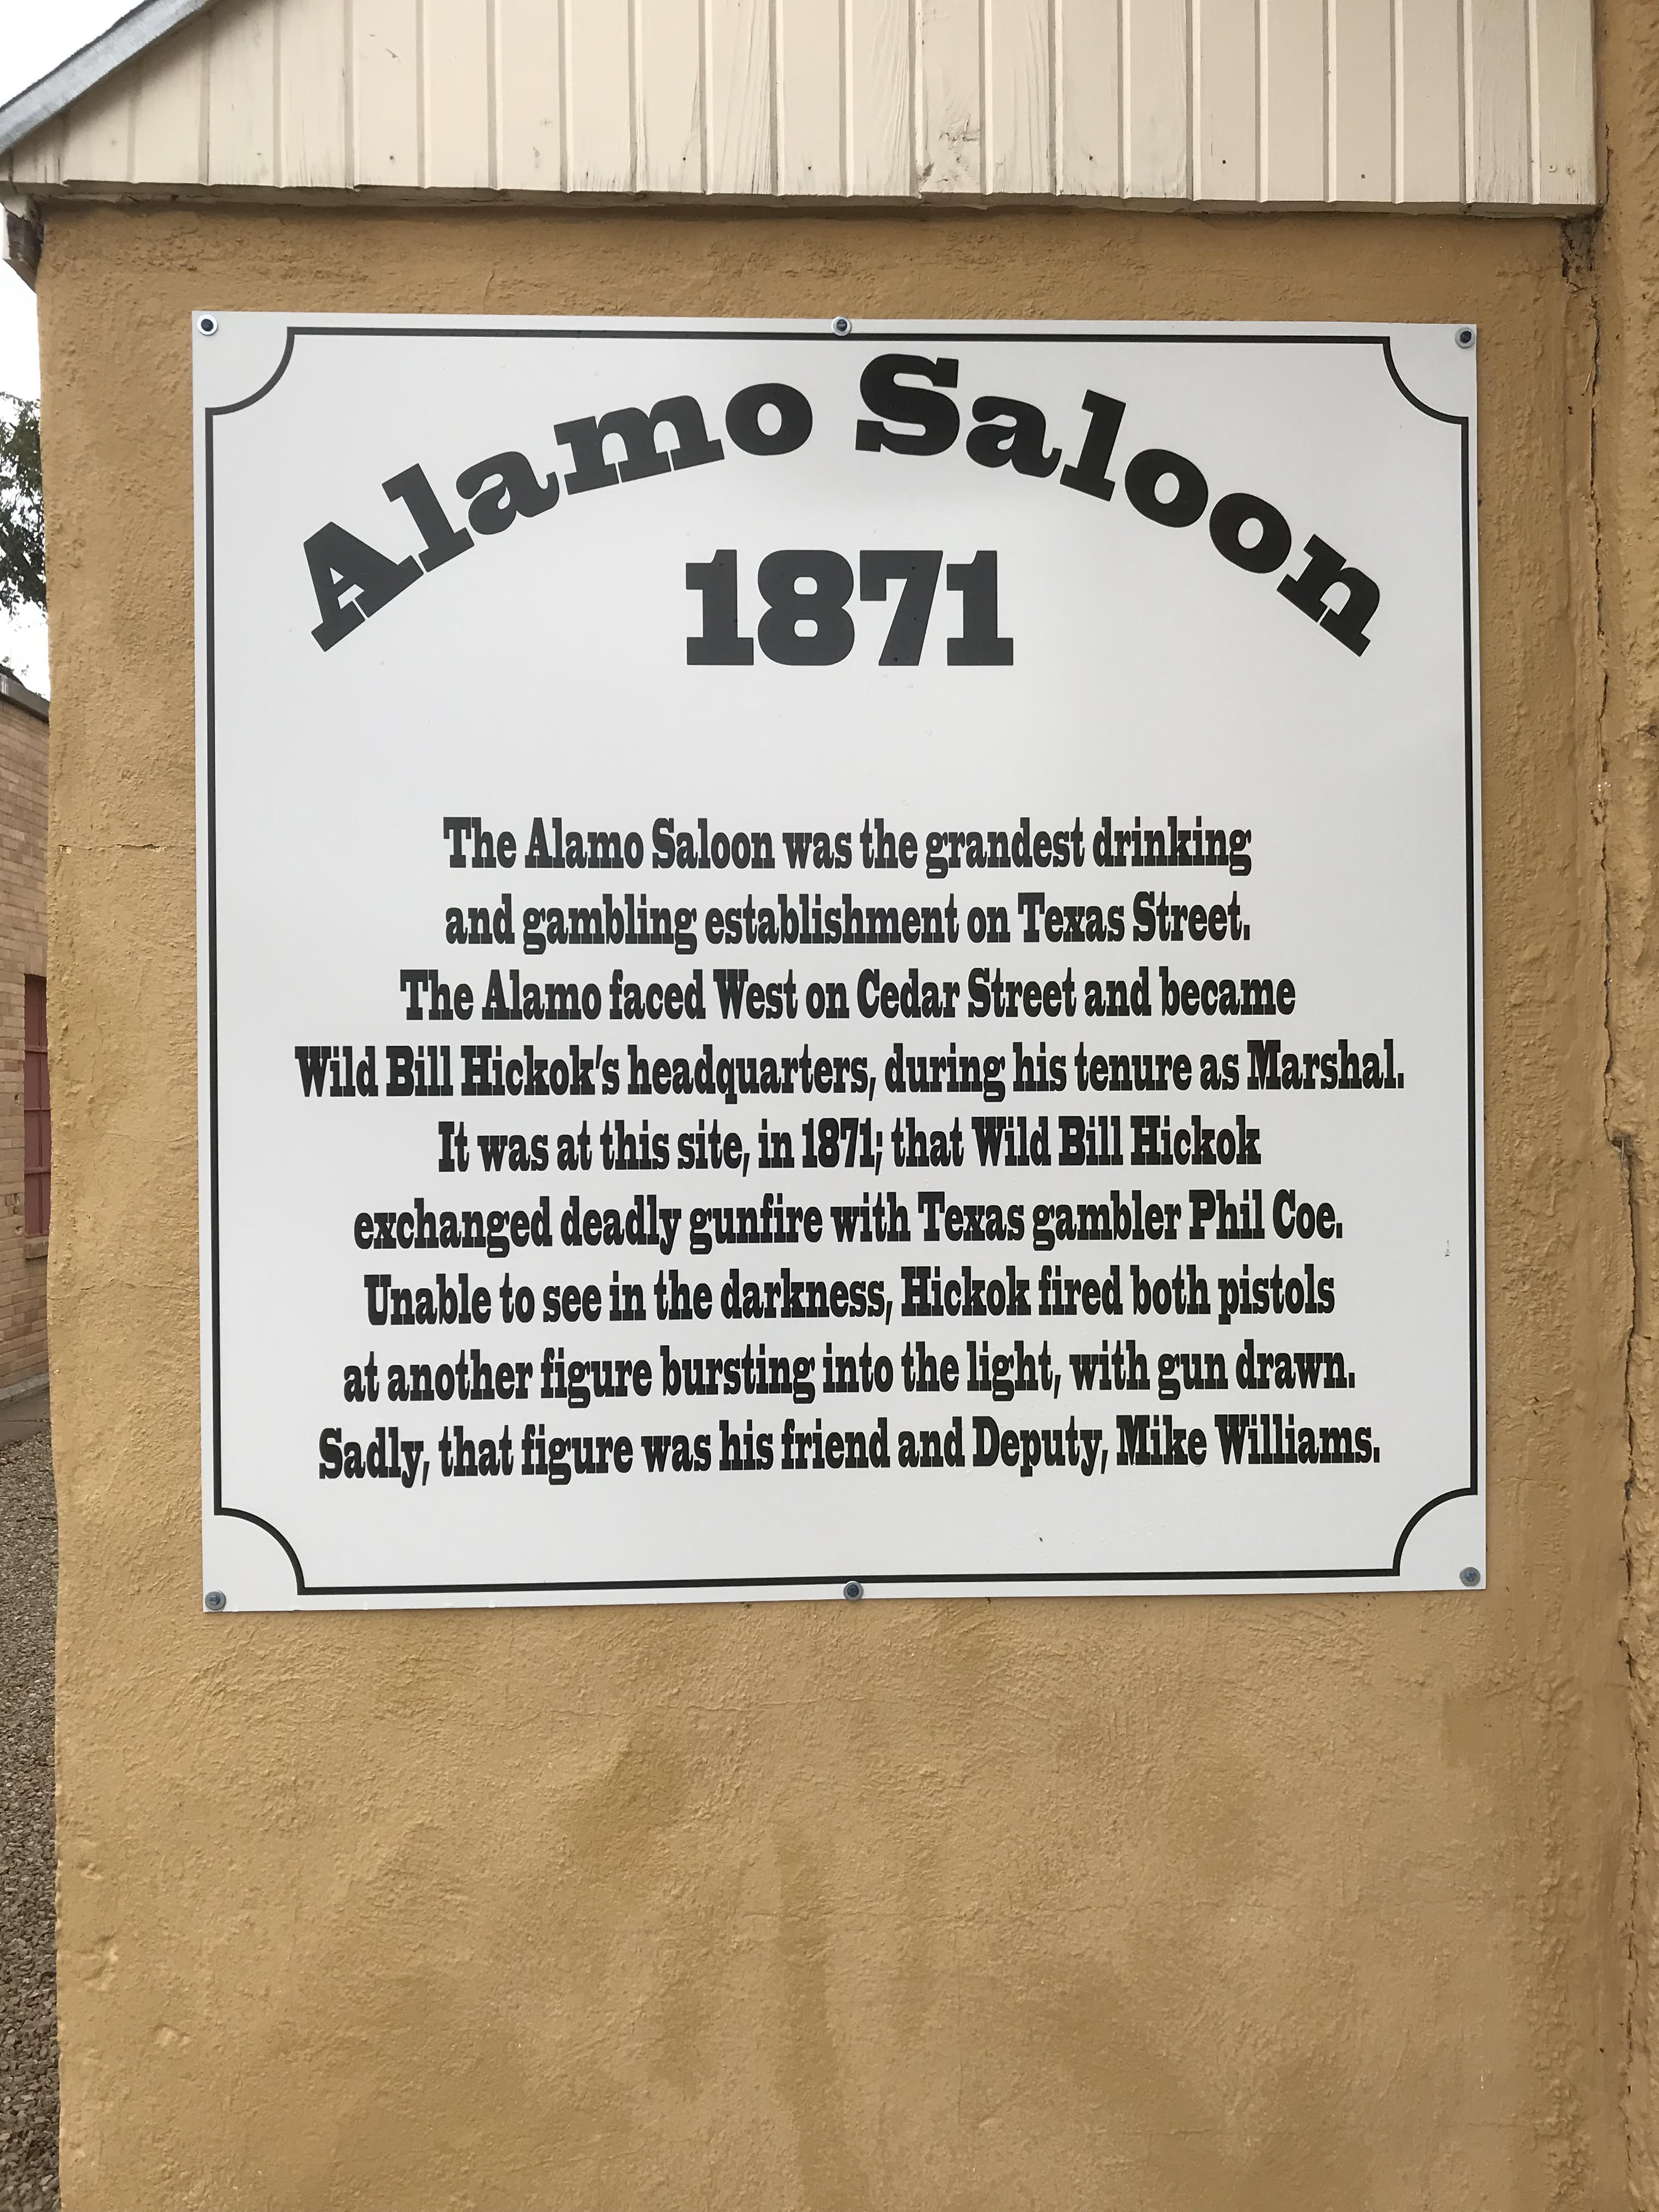 Commemorative sign at the original site of the Alamo Saloon on the corner of N Cedar St. and W 1st St.